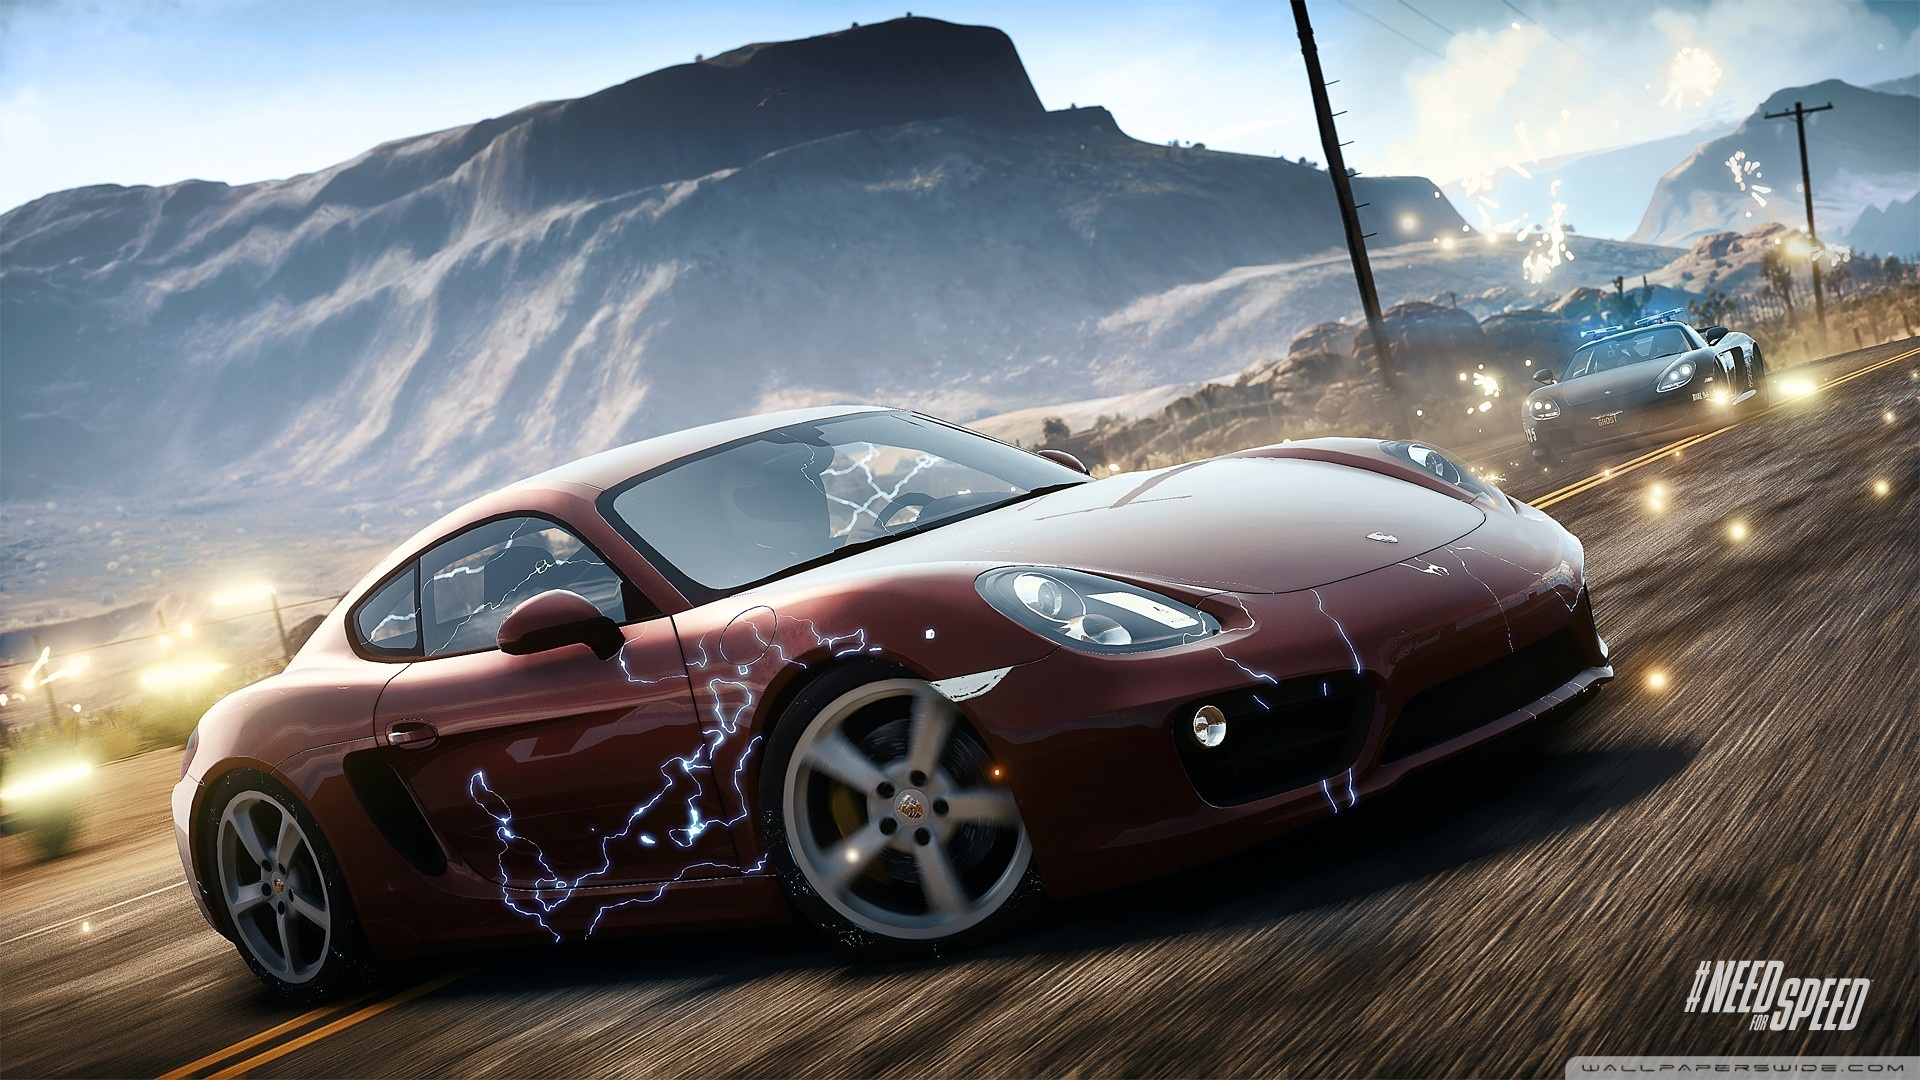 Need For Speed Wallpapers Top Free Need For Speed